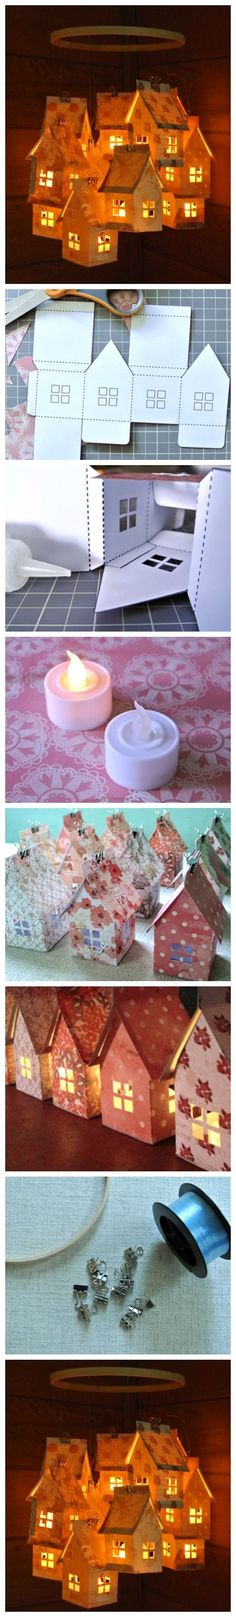 Christmas DIY: Paper House Luminari Paper House Luminaries and Mobile Noel Christmas, Christmas Crafts, Christmas Decorations, Christmas Ornaments, Diy And Crafts, Craft Projects, Crafts For Kids, Projects To Try, Diy Paper